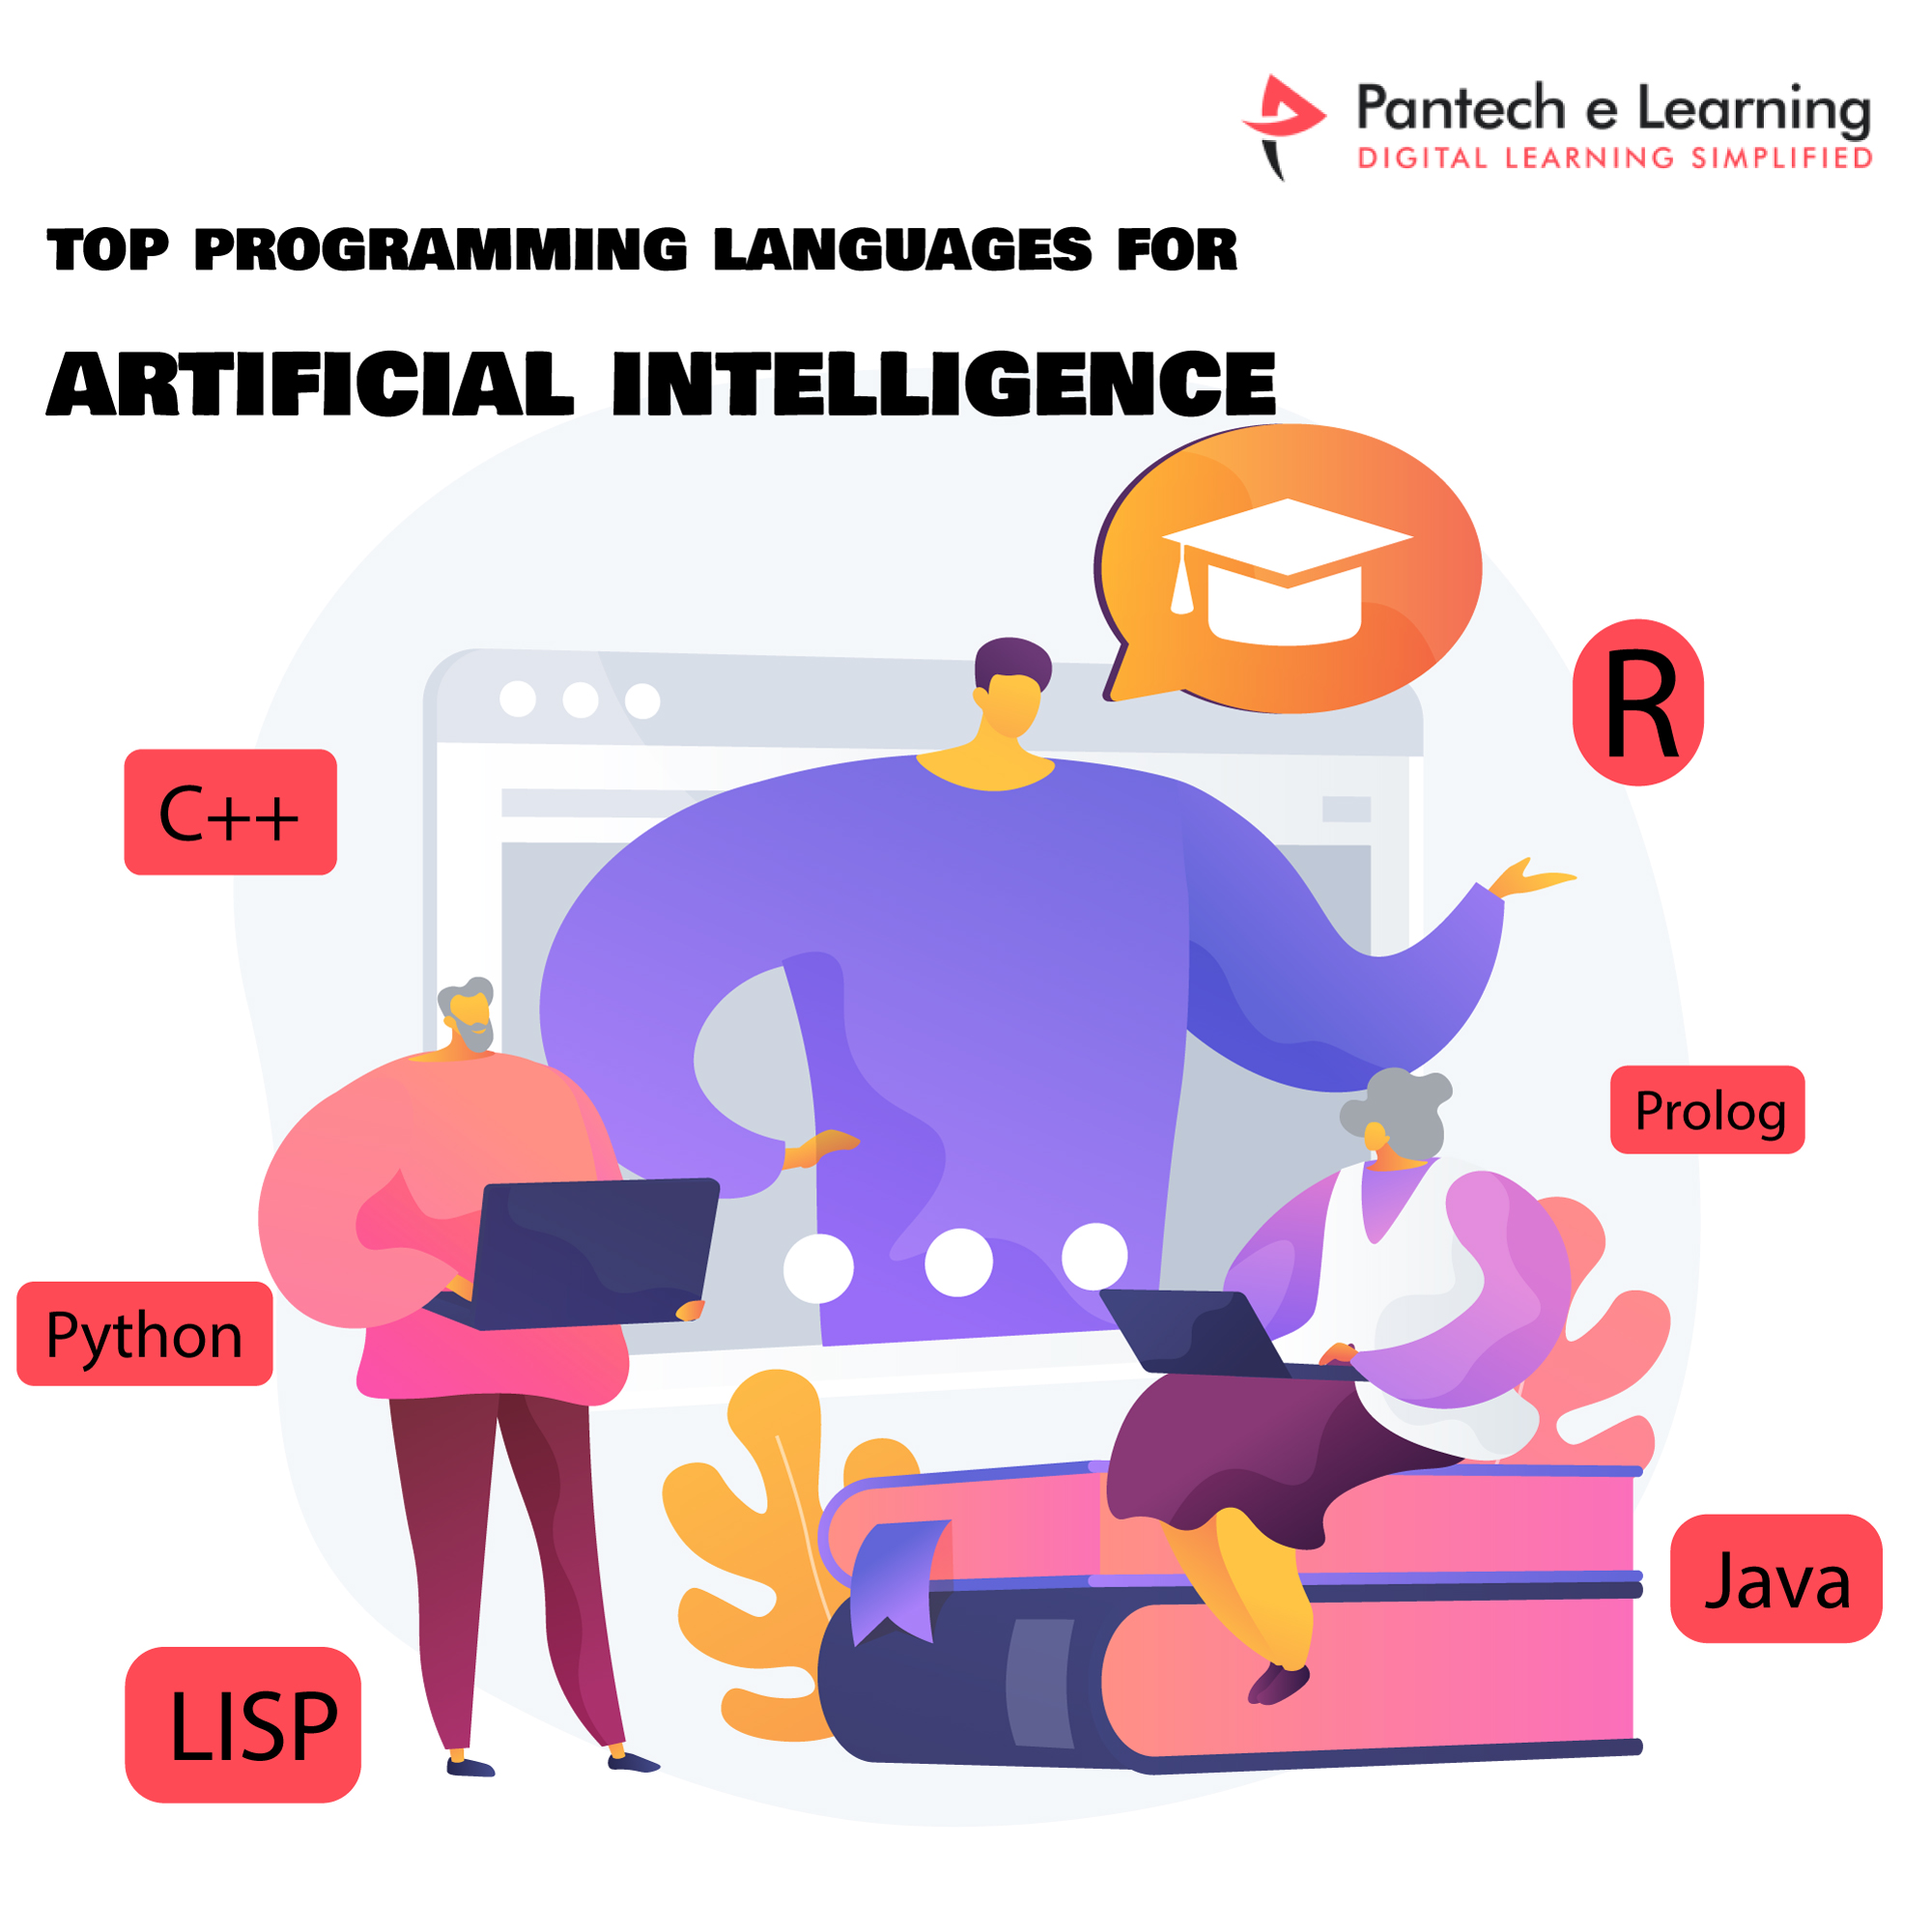 Top Programming Languages for AI